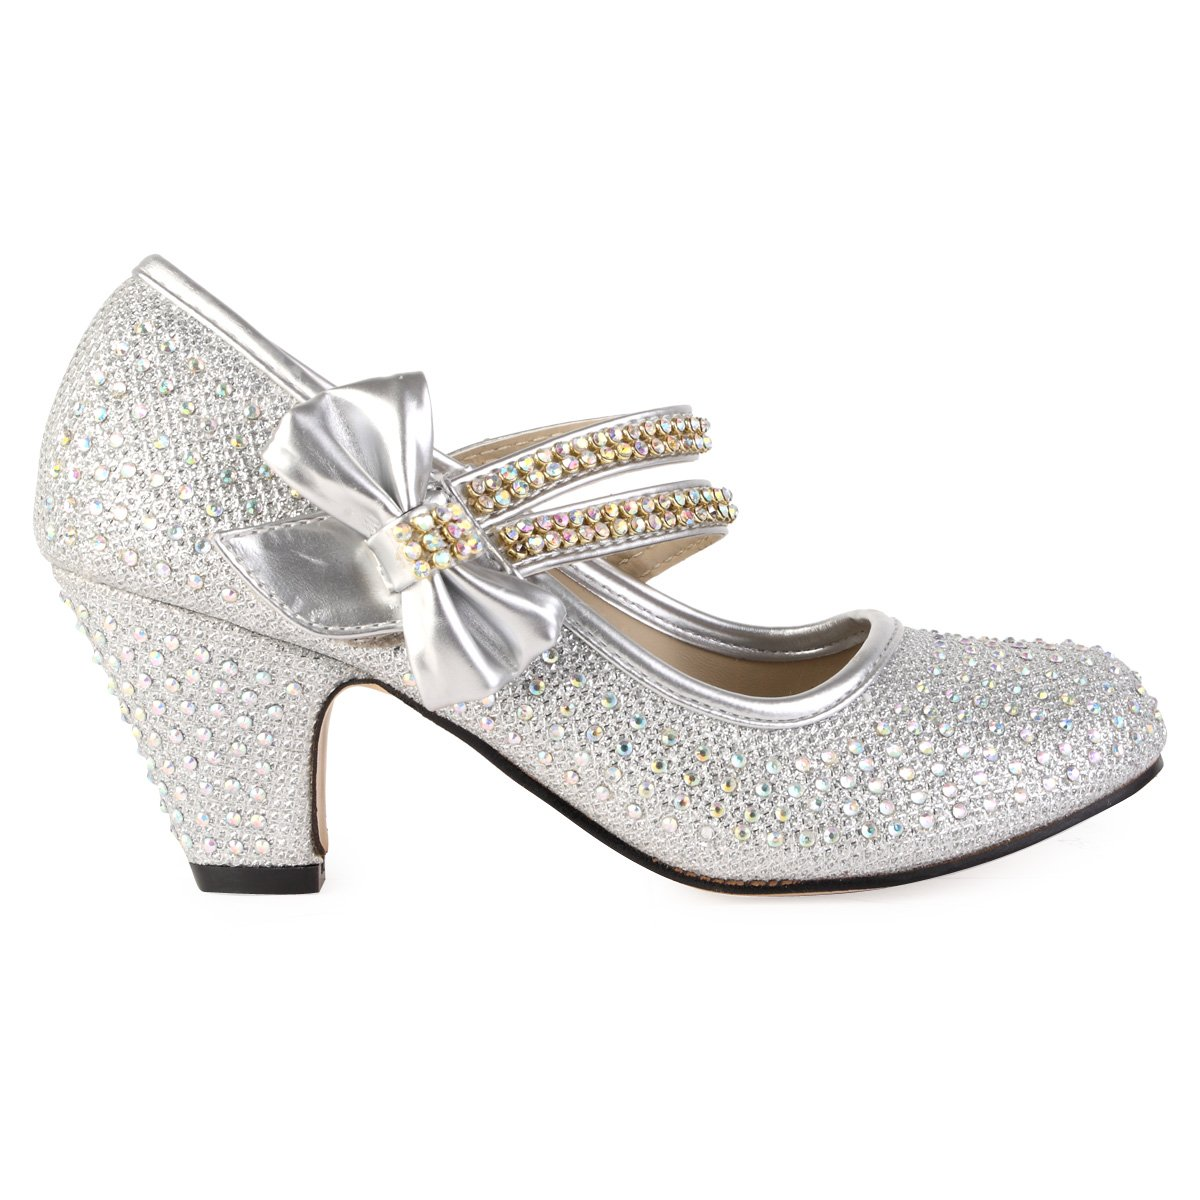 90O Girls Silver Diamante Strappy Kids Block Heel Mary Jane Style Court Shoes Size 1